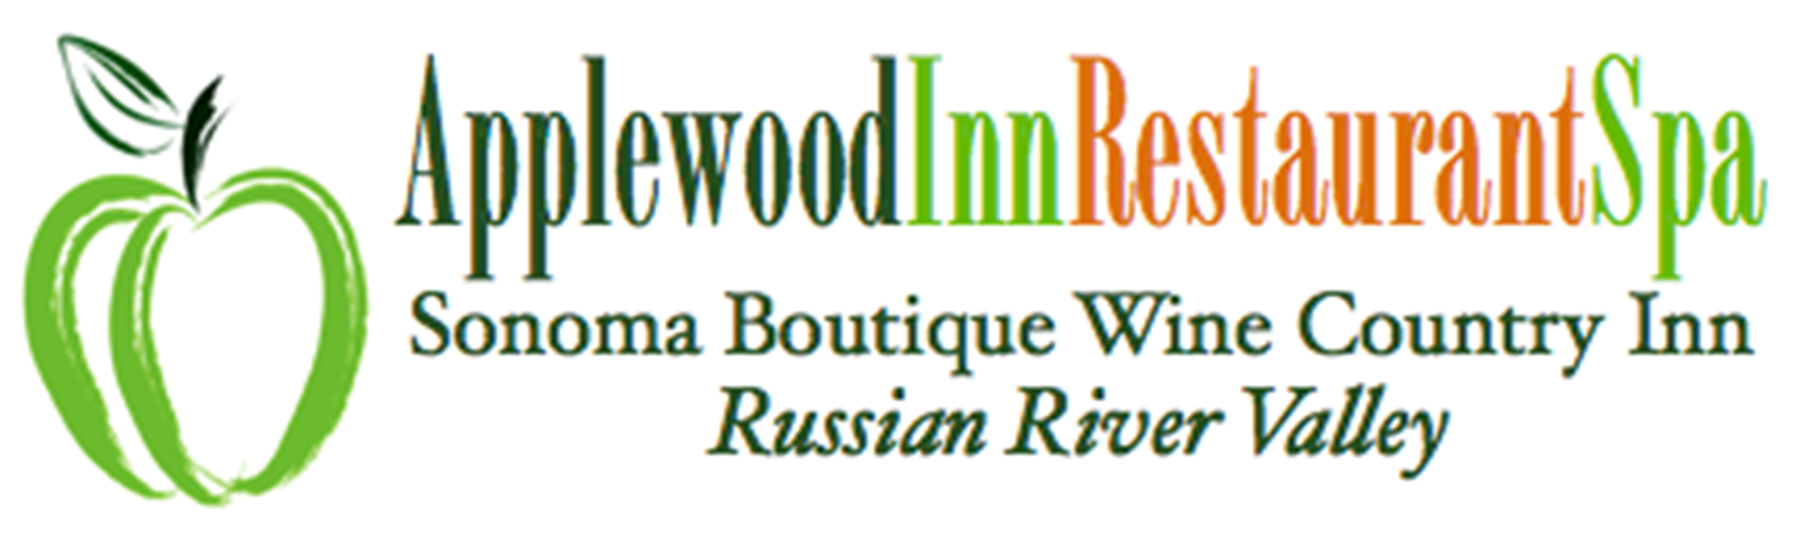 Applewood Inn, Restaurant and Spa